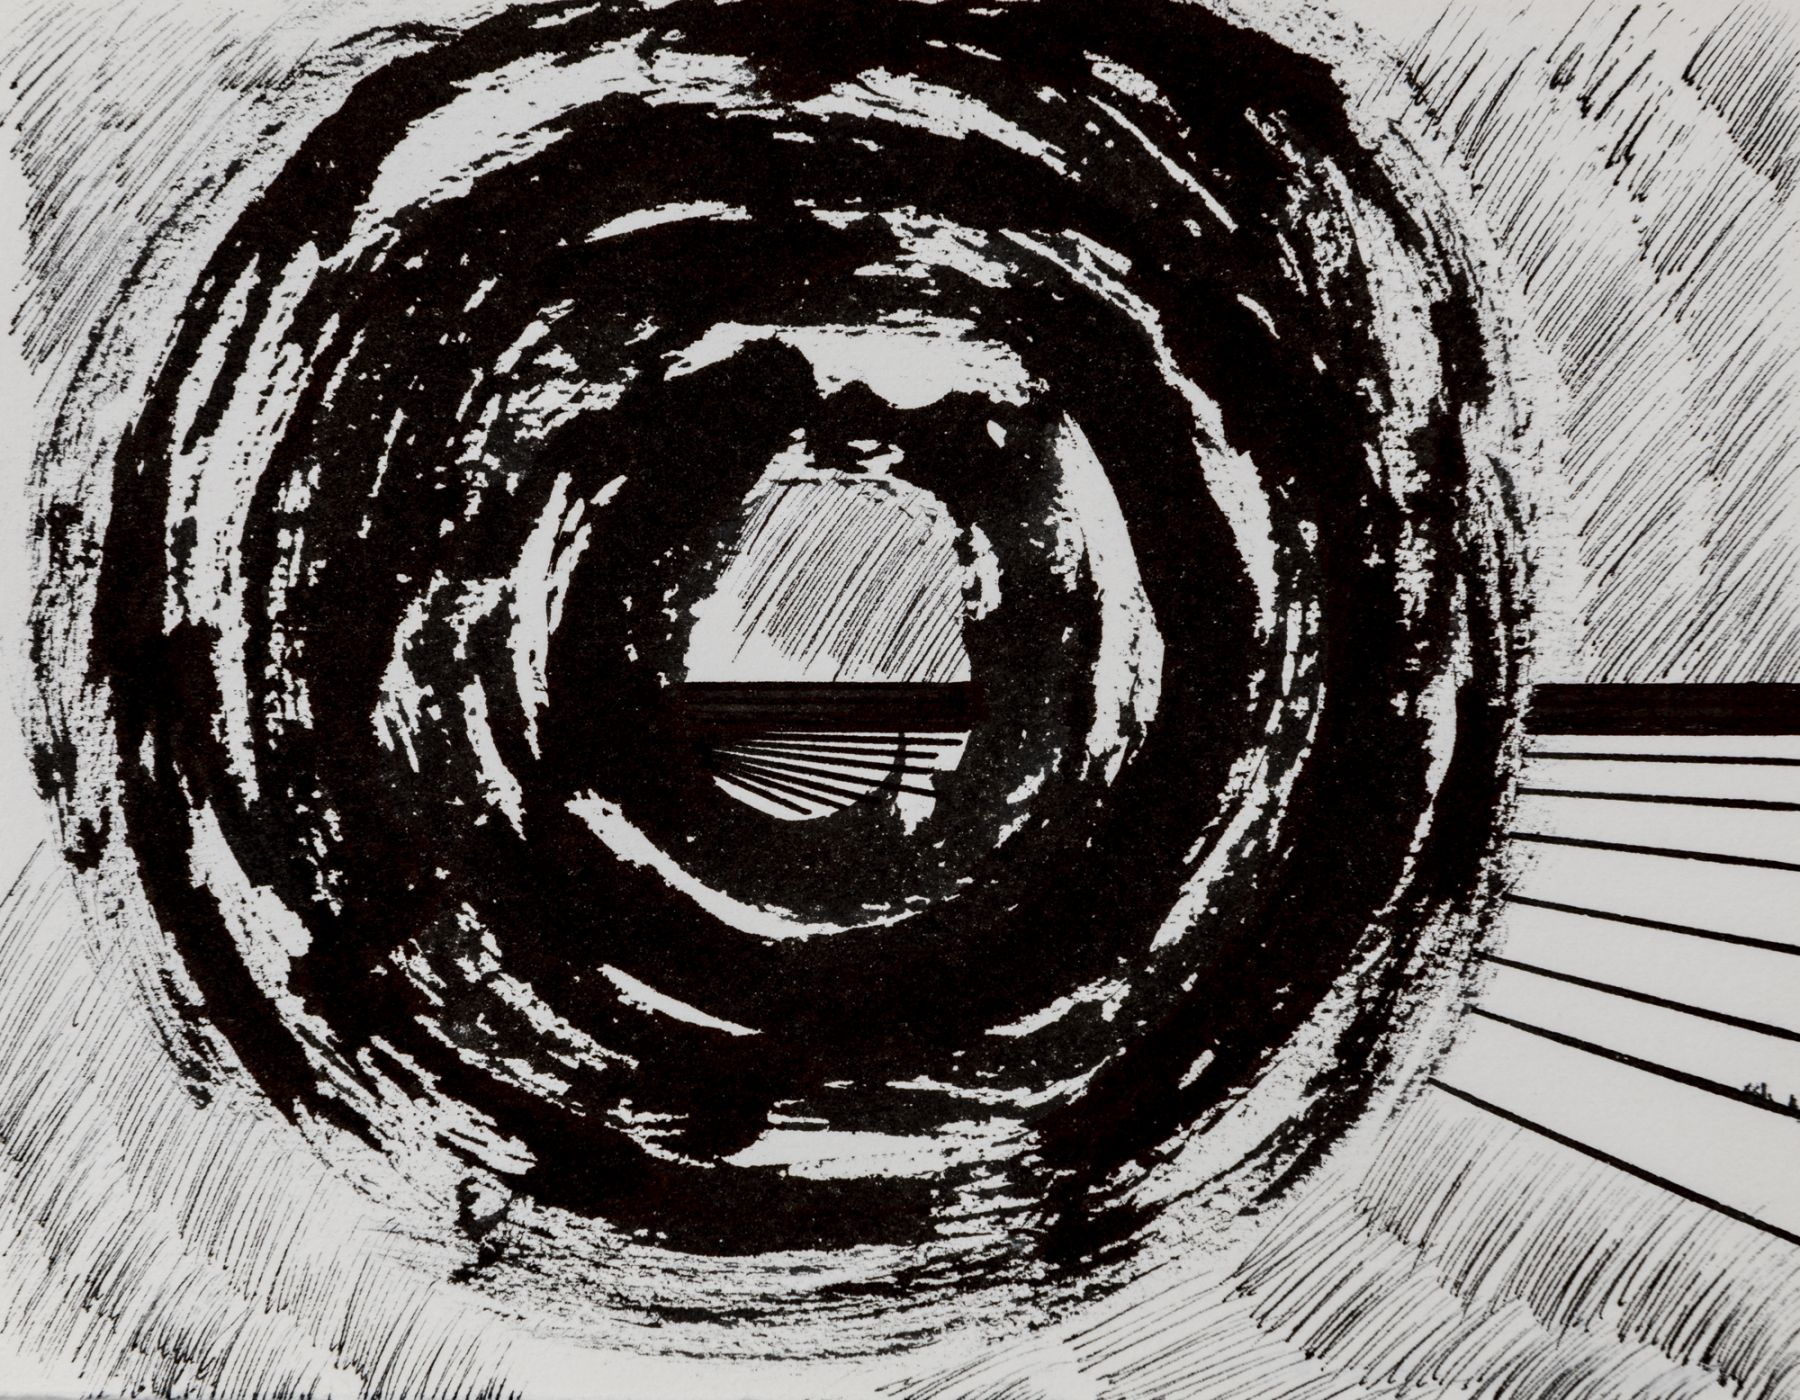 Felrath Hines, Untitled, 1977,  Ink on paper,  5 x 6.5 inches,  Unsigned. Thick circular ink lines surrounded by smaller thin vertical lines. Felrath Hines worked to create universal visual idioms from a place of complex personal experience. His figurative and cubist-style artwork morphed into soft-edged organic abstracts as he grappled with hues in his chosen oil medium.